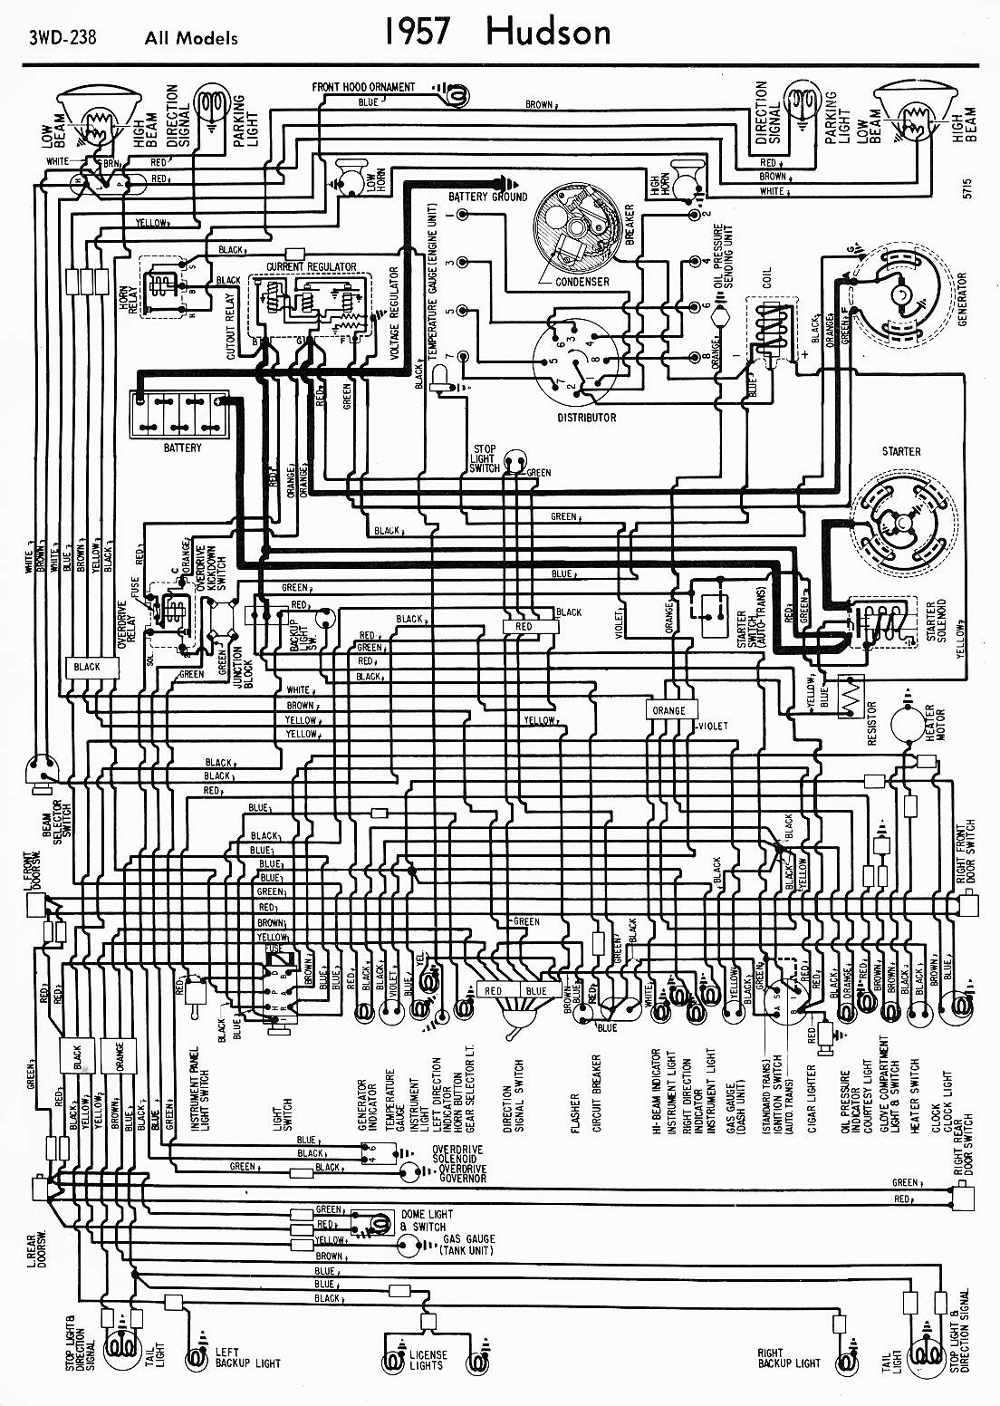 Hudson Car Manuals Wiring Diagrams Pdf Fault Codes Chevy Besides Ignition Switch Diagram Download